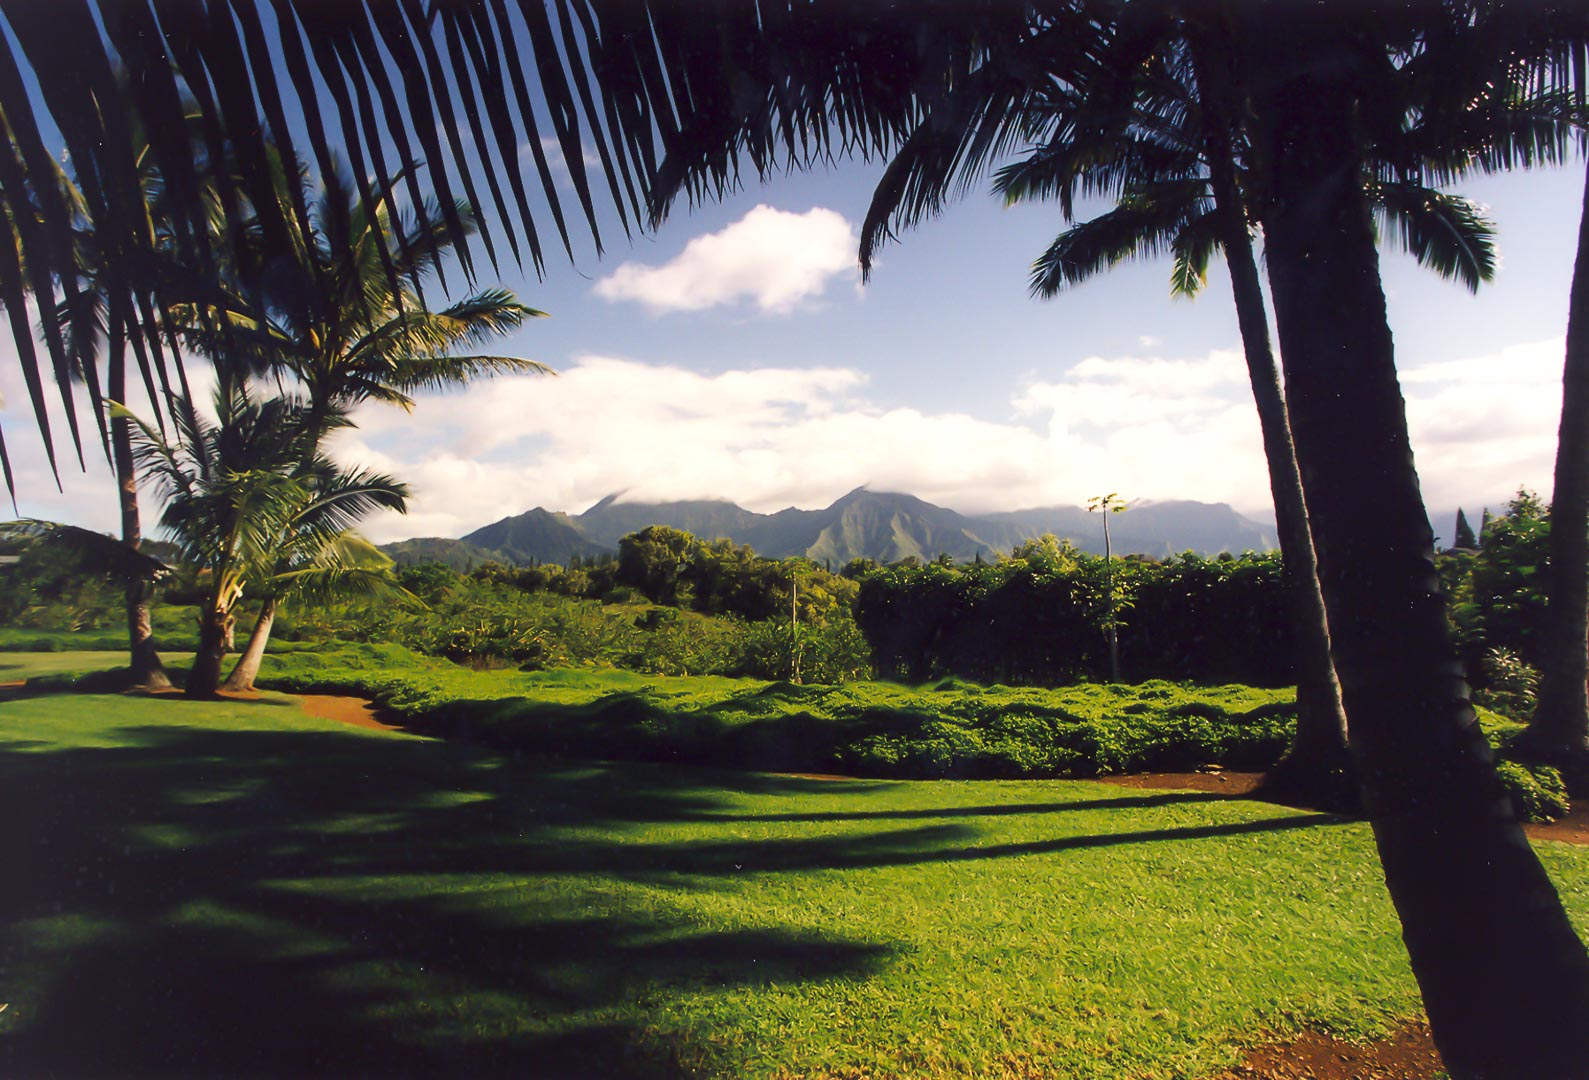 A scenic view from VRI's Alii Kai Resort in Hawaii